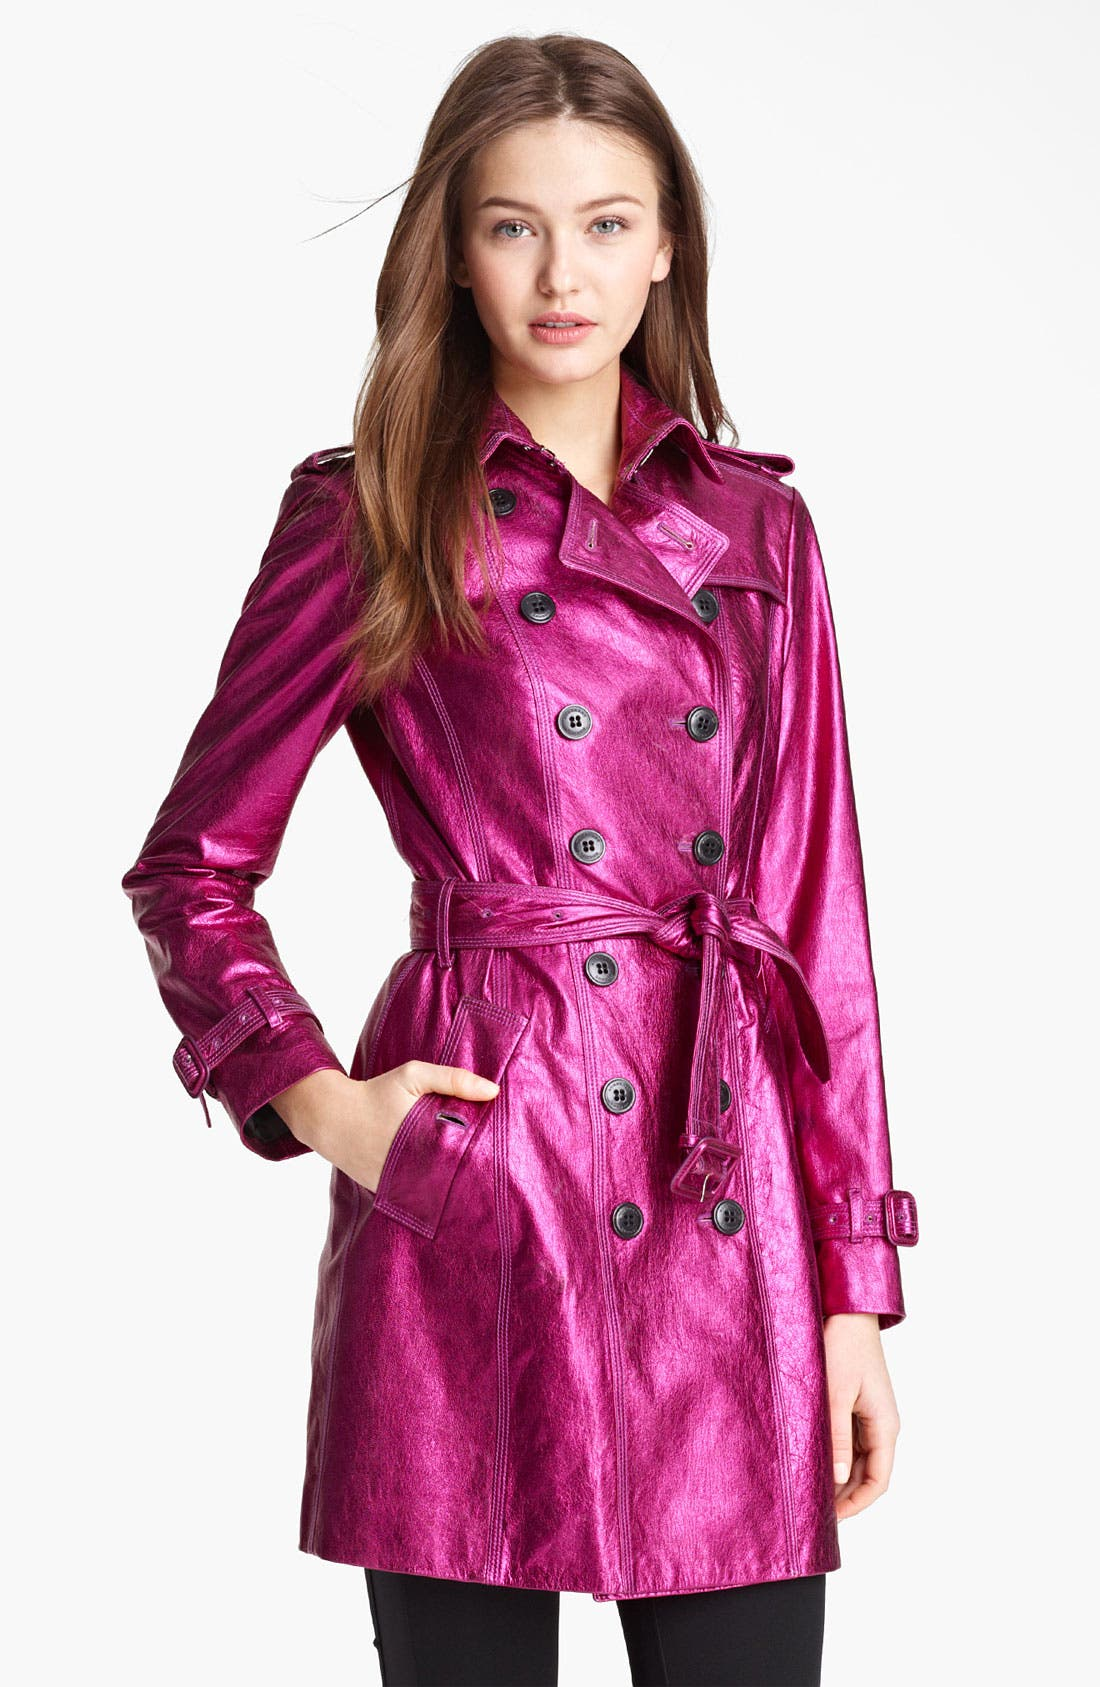 Alternate Image 1 Selected - Burberry London Metallic Leather Trench Coat